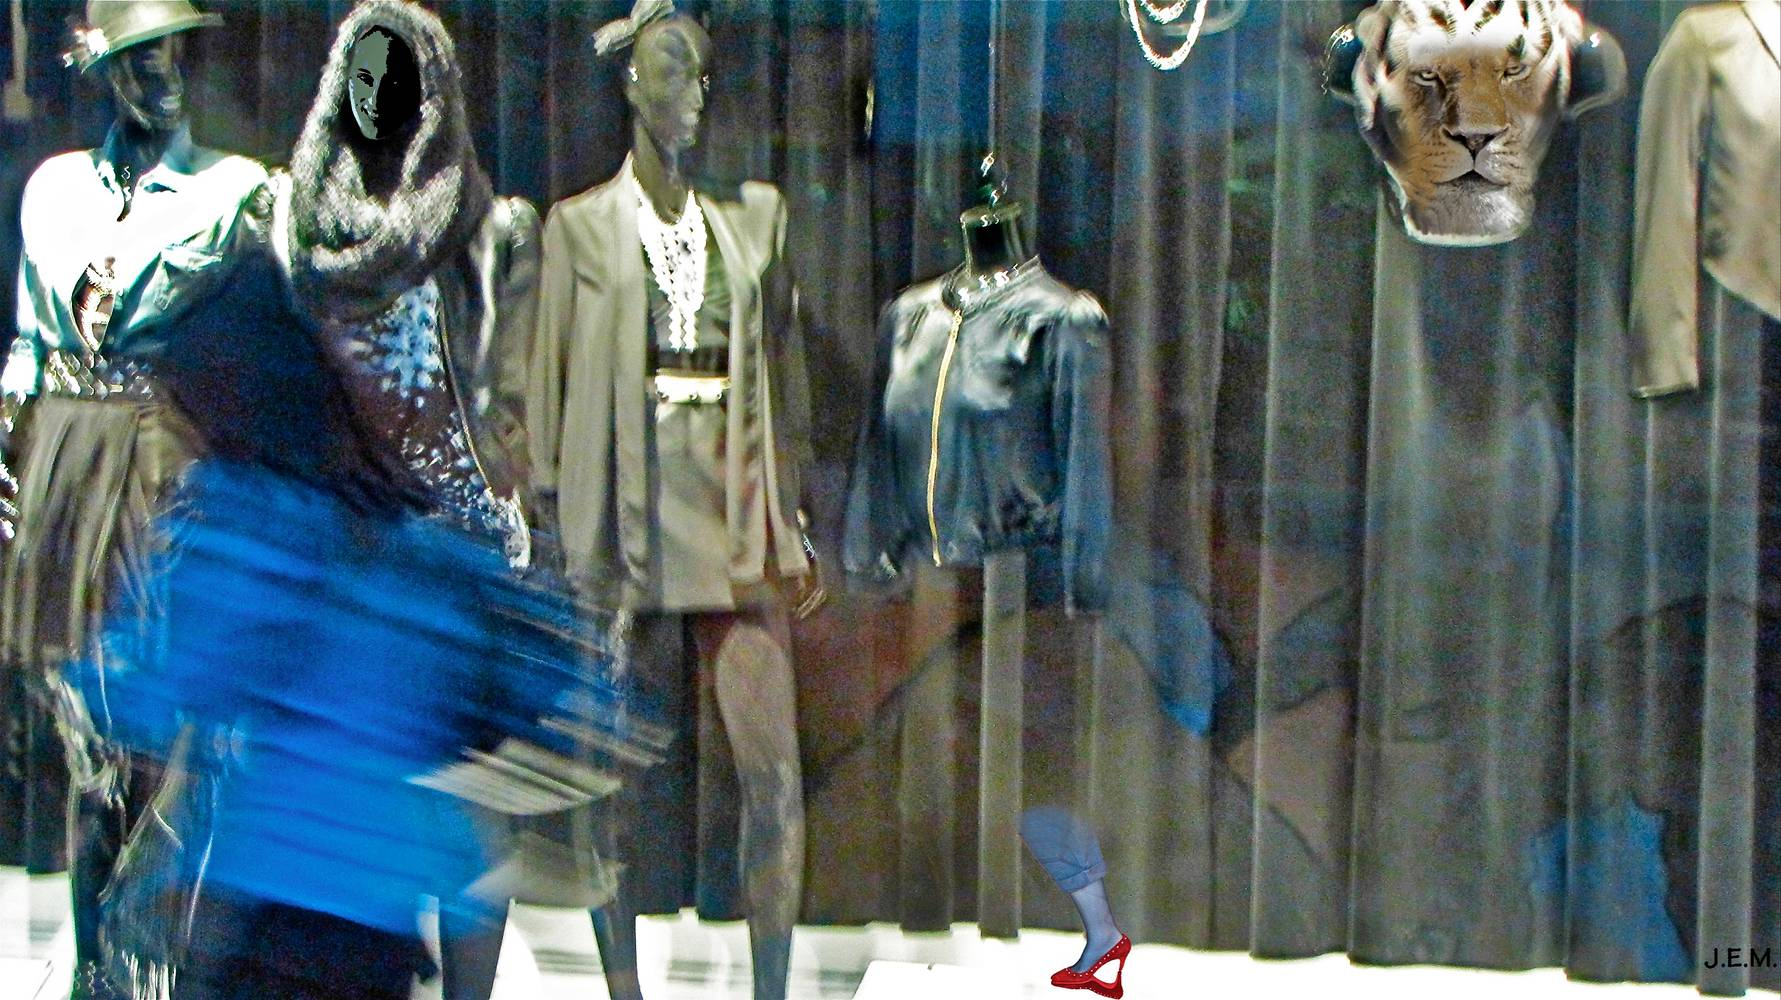 WINDOW SHOPPING by Joeann Edmonds-Matthew